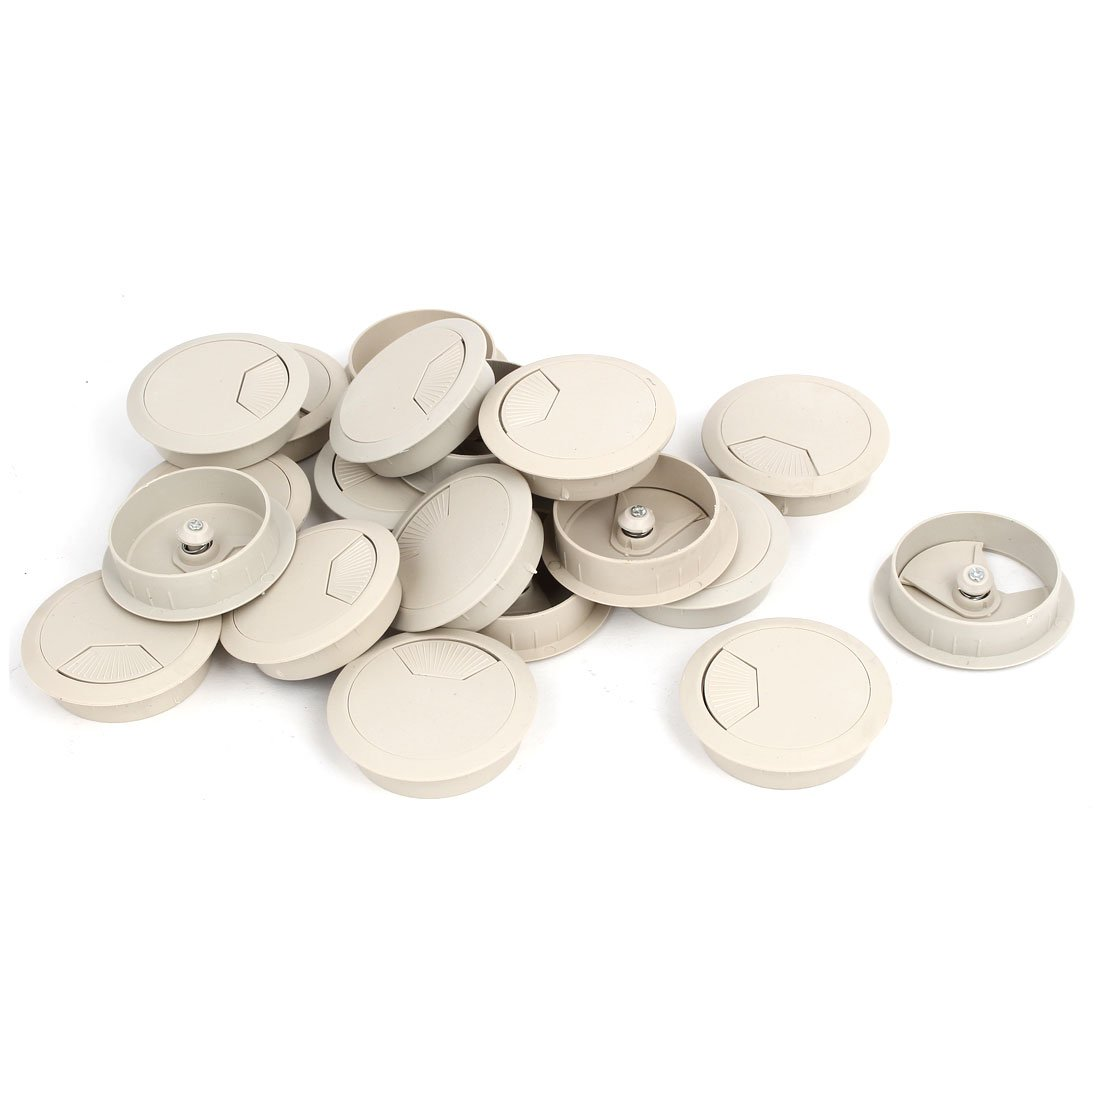 uxcell Computer Desk 53mm Dia Plastic Adjustable Grommet Cable Hole Cover Gray 20pcs